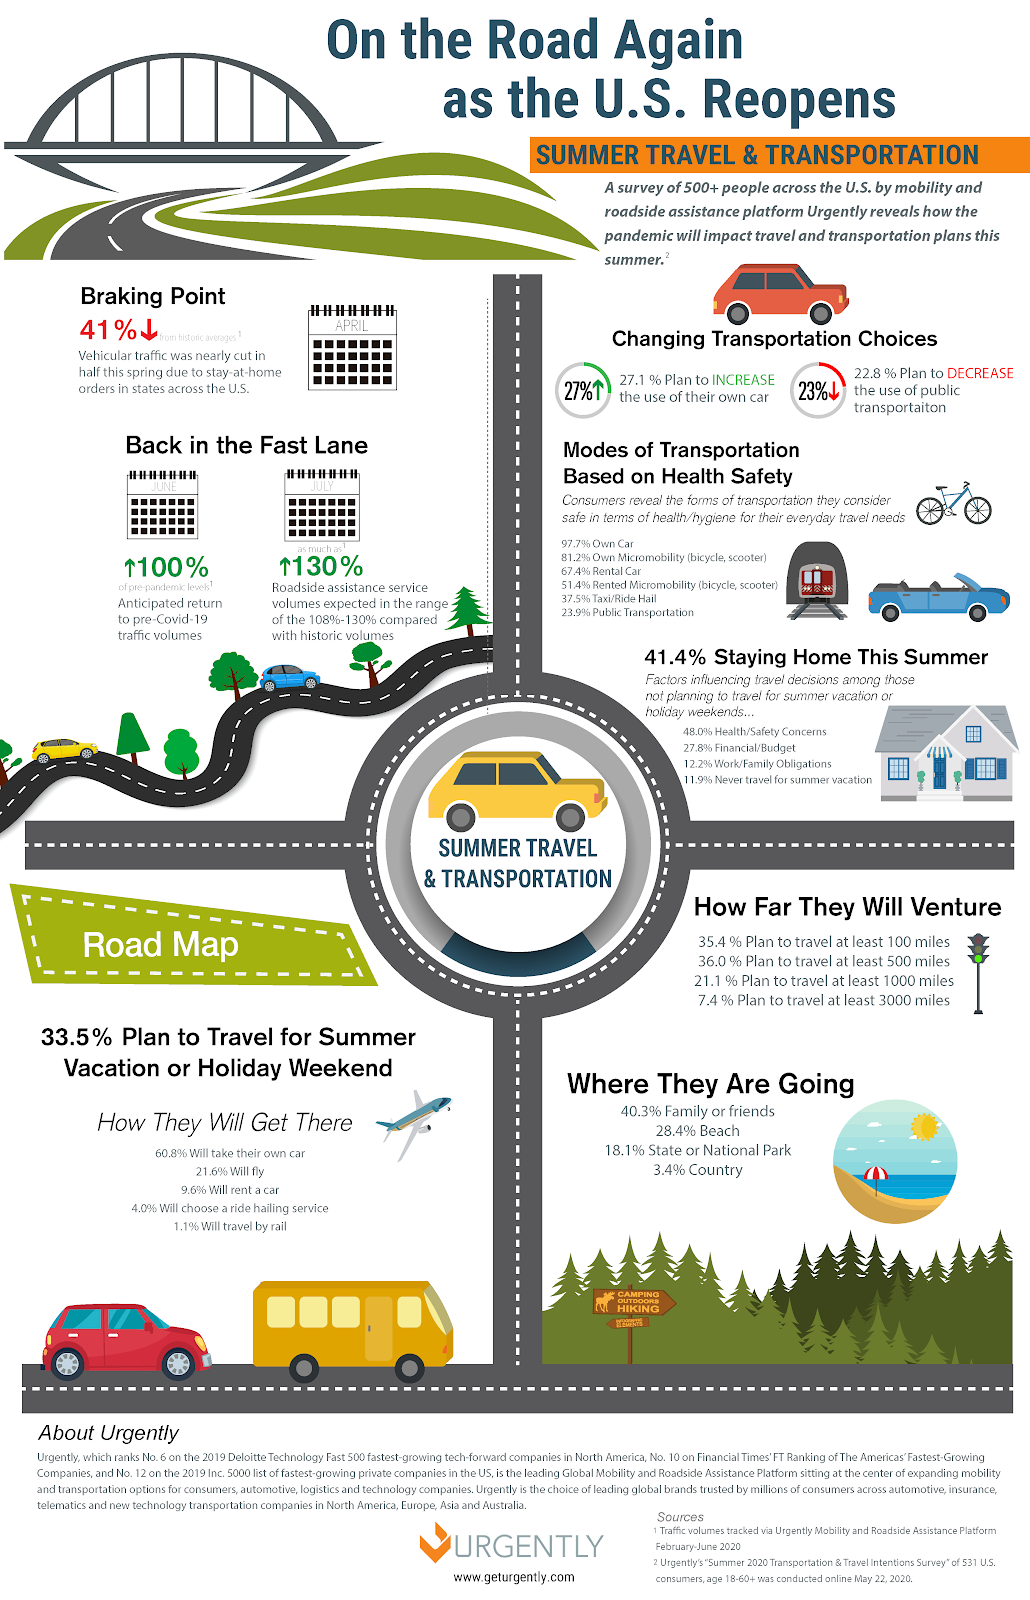 Infographic: On the Road Again as the U.S. Reopens. Using artistic elements and stylized data points, theinfographic delivers key insights from a survey conducted by U.S.-based mobility and roadside assistance company Urgnetly regarding summer travel and transportation in 2020.